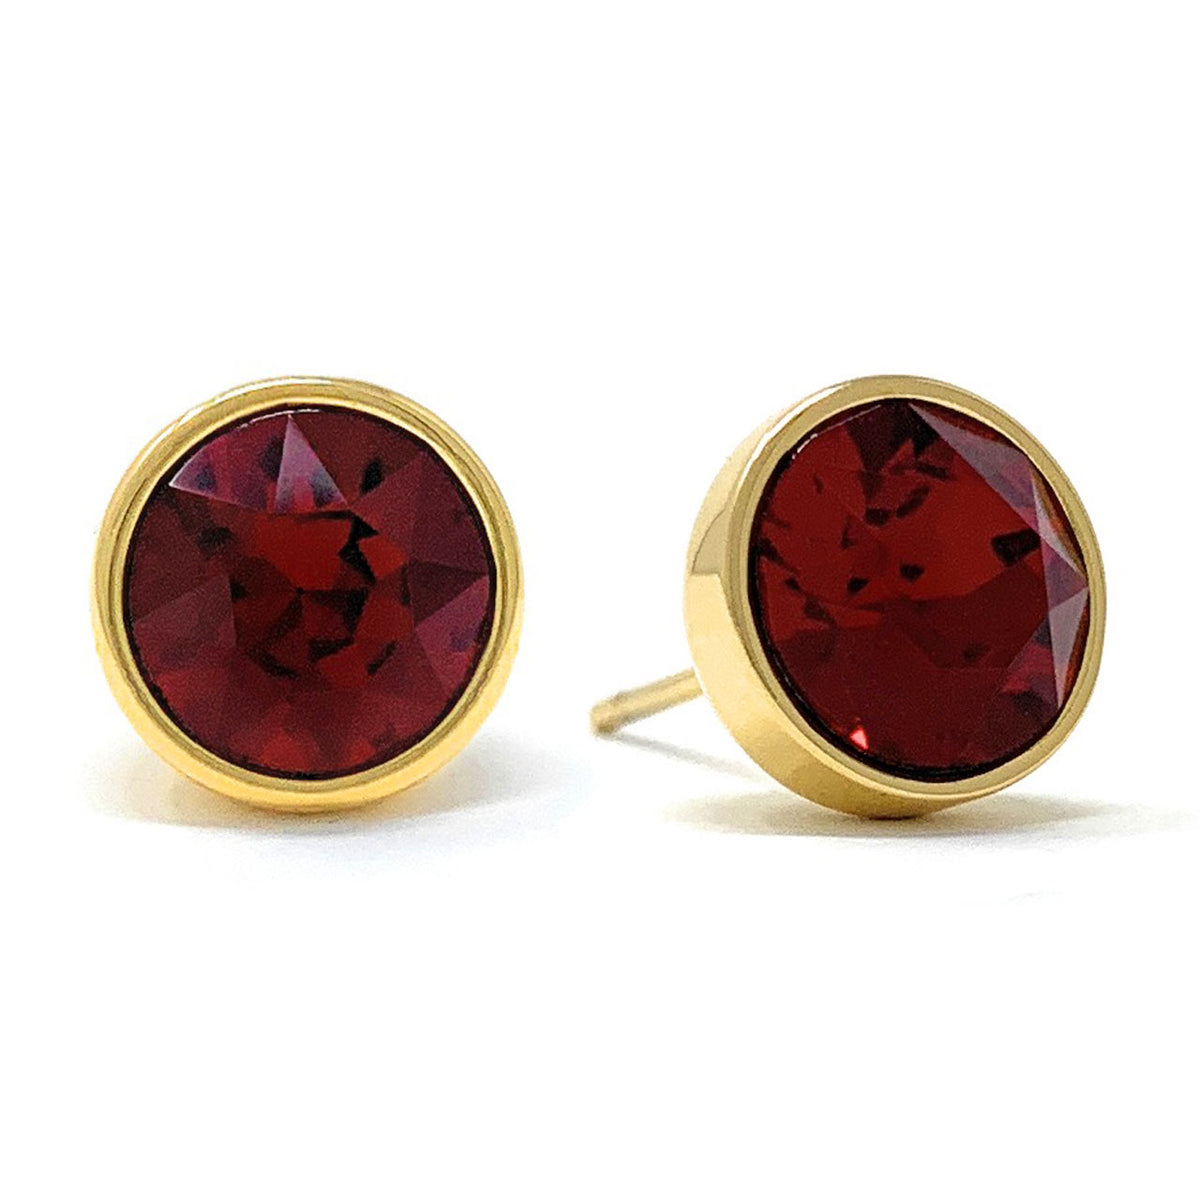 Harley Stud Earrings with Red Siam Round Crystals from Swarovski Gold Plated - Ed Heart